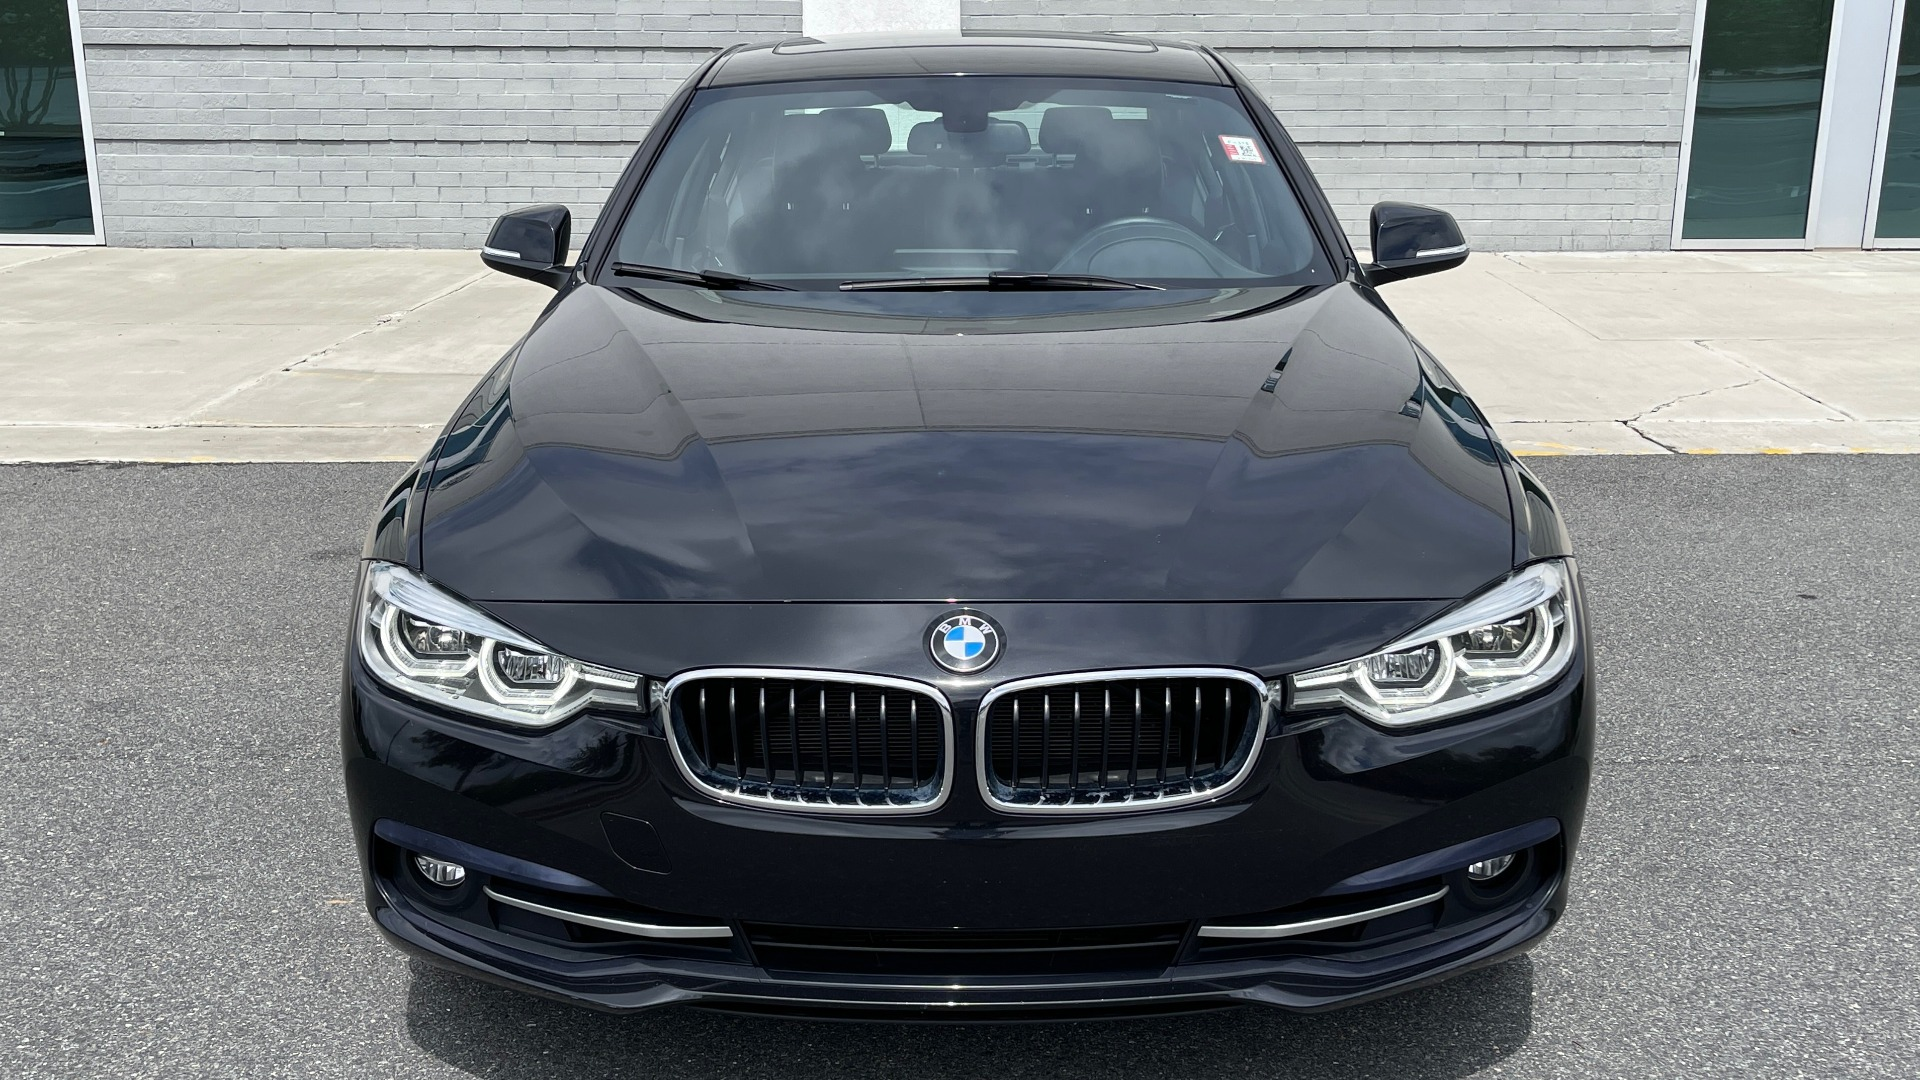 Used 2018 BMW 3 SERIES 330IXDRIVE / NAV / CONV PKG / ABSD / SUNROOF / REARVIEW for sale $29,599 at Formula Imports in Charlotte NC 28227 11